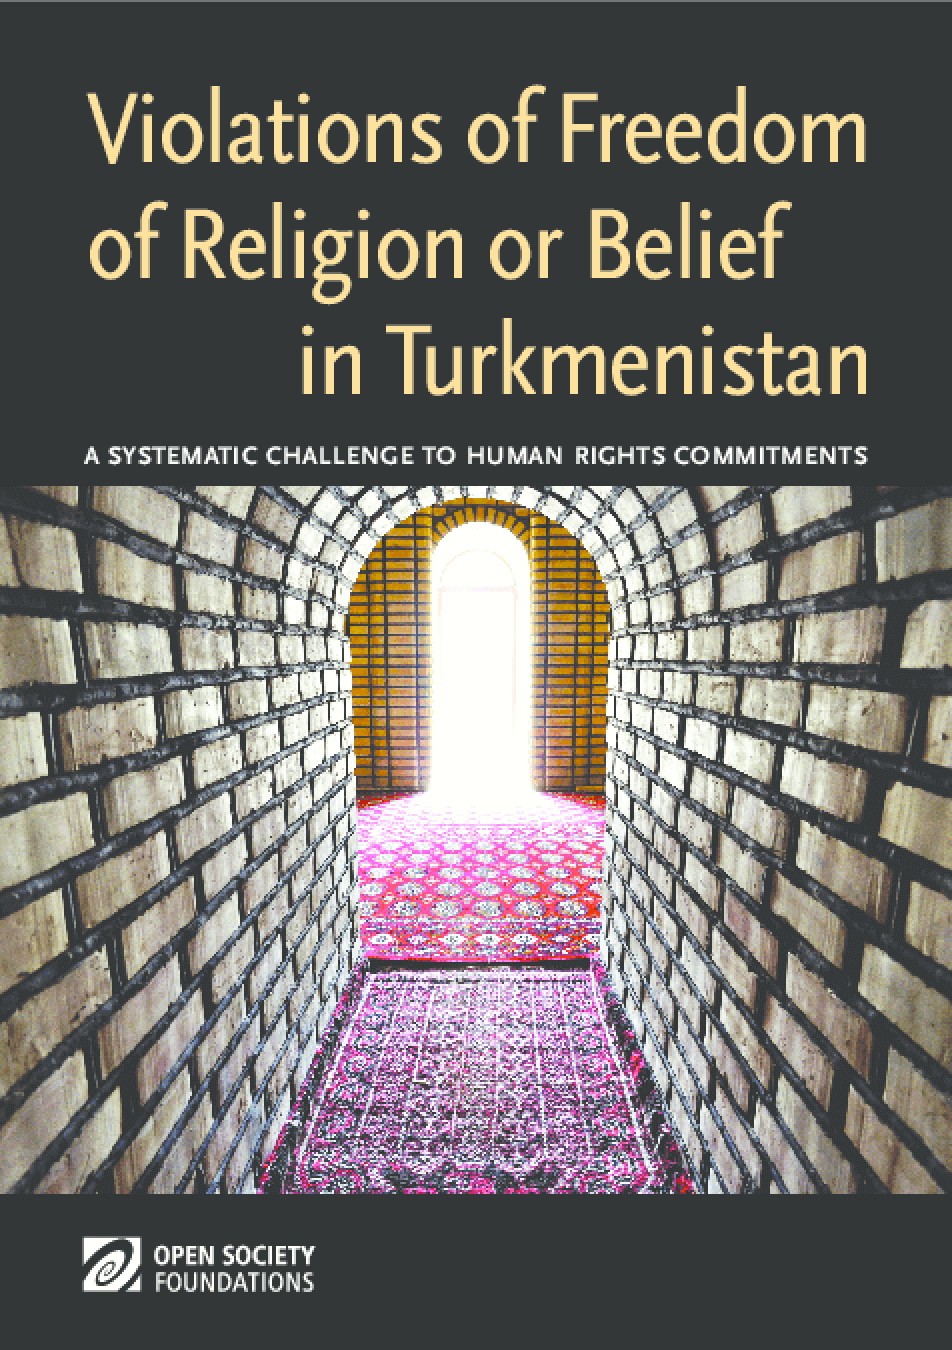 Violations of Freedom of Religion or Belief in Turkmenistan: A Systematic Challenge to Human Rights Commitments